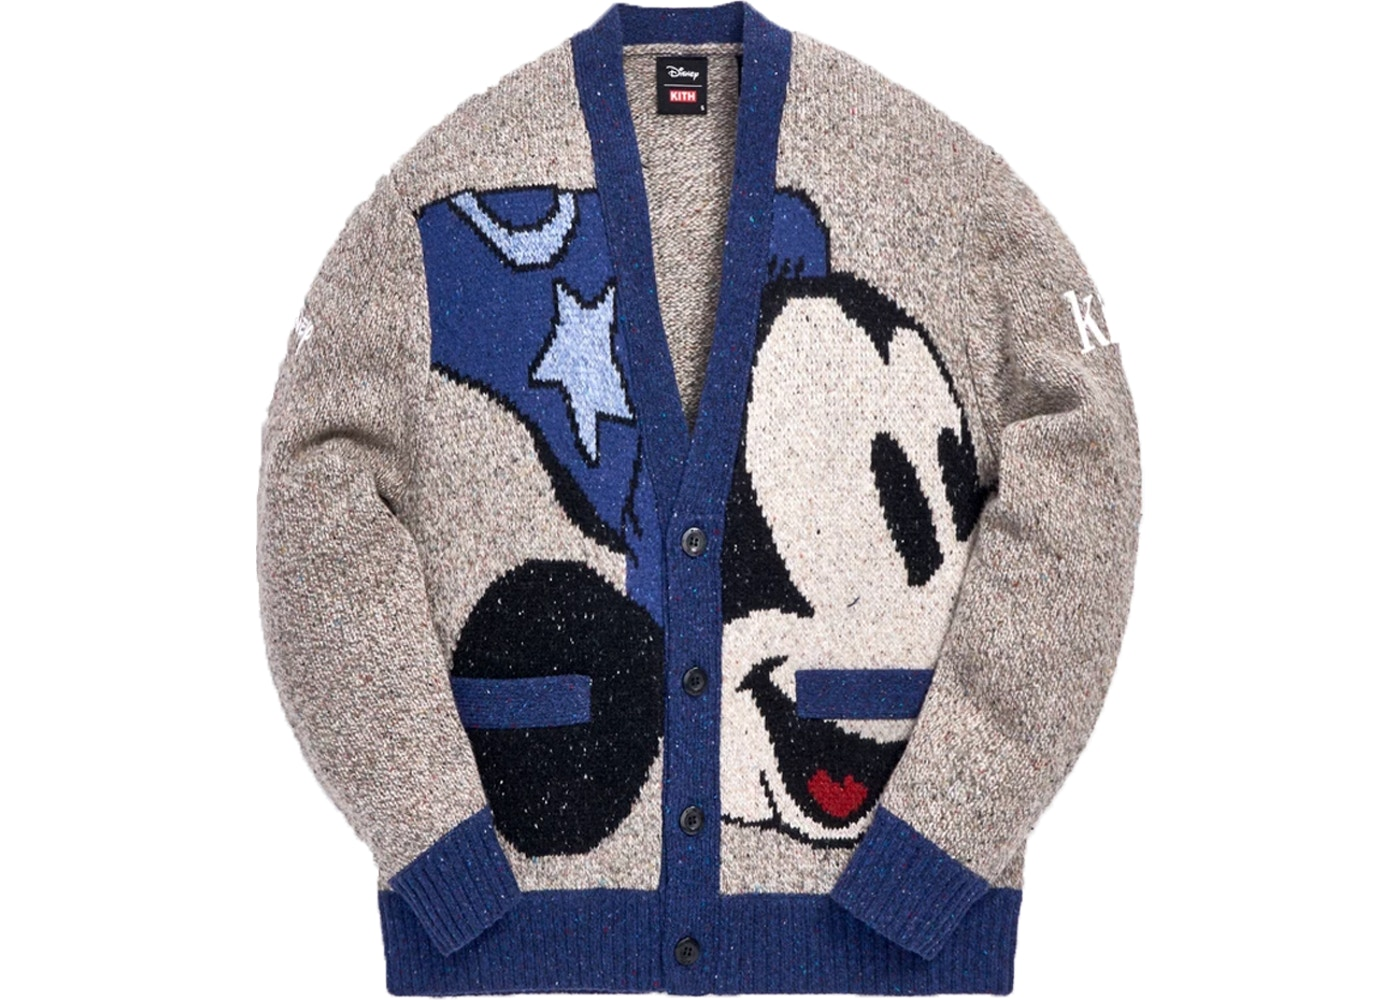 Kith x Disney 40s Knit Cardigan Navy